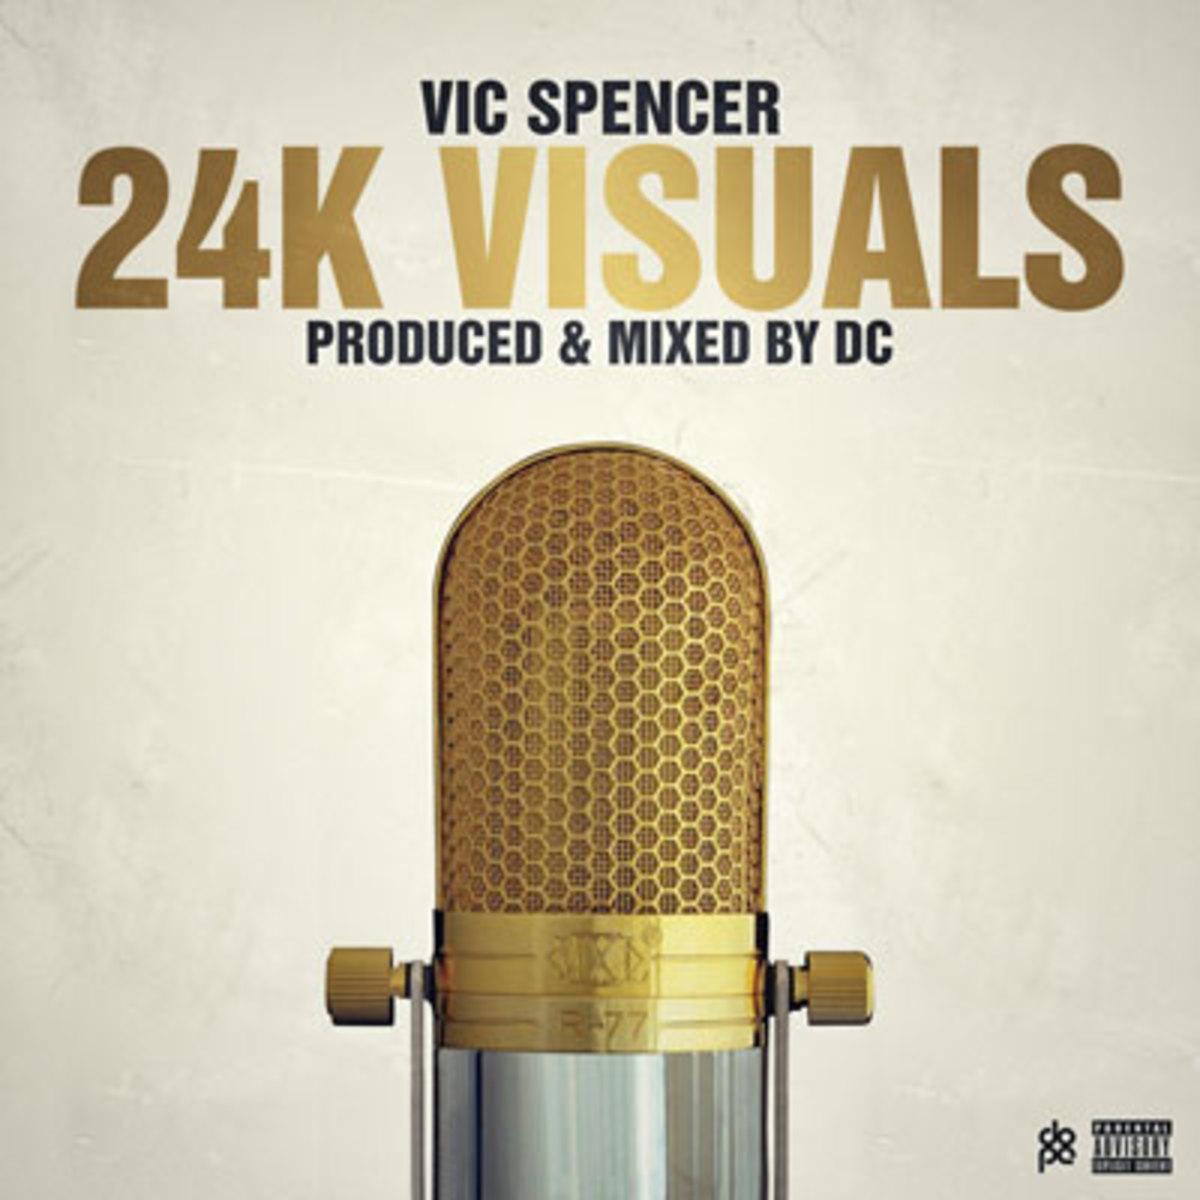 vicspencer-24kvisuals.jpg